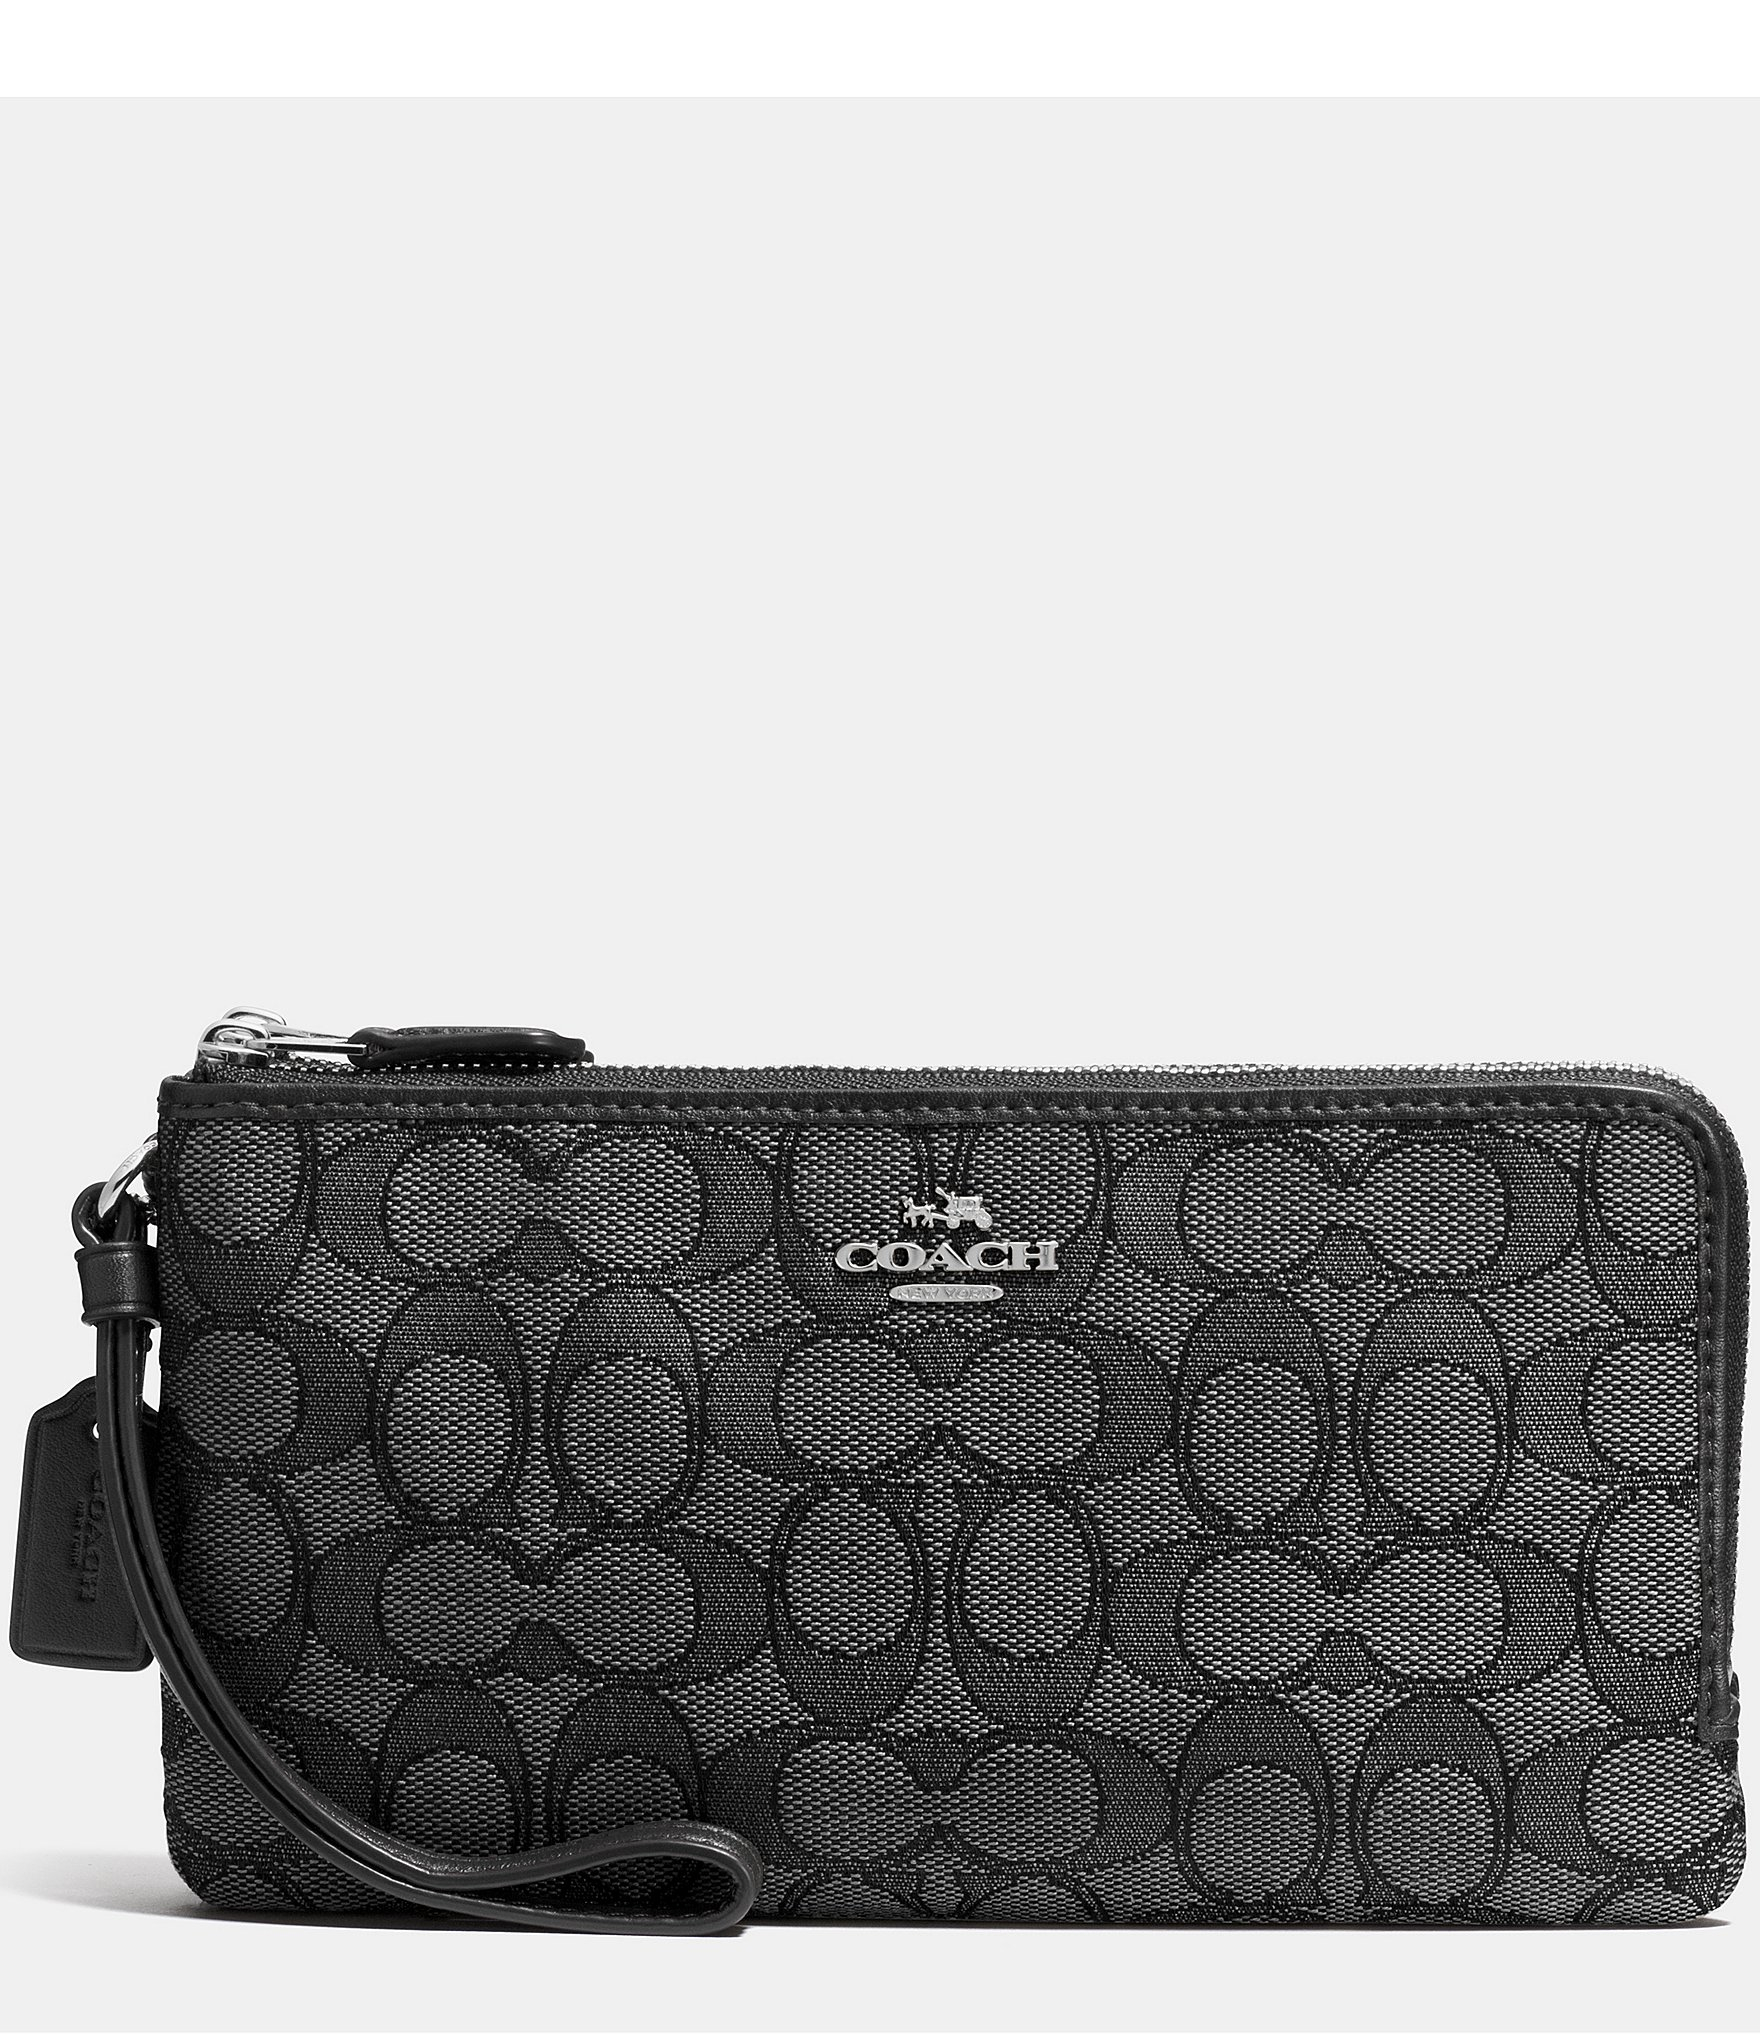 0602dd07a2 Lyst - Coach Double Zip Wallet In Signature Jacquard in Black